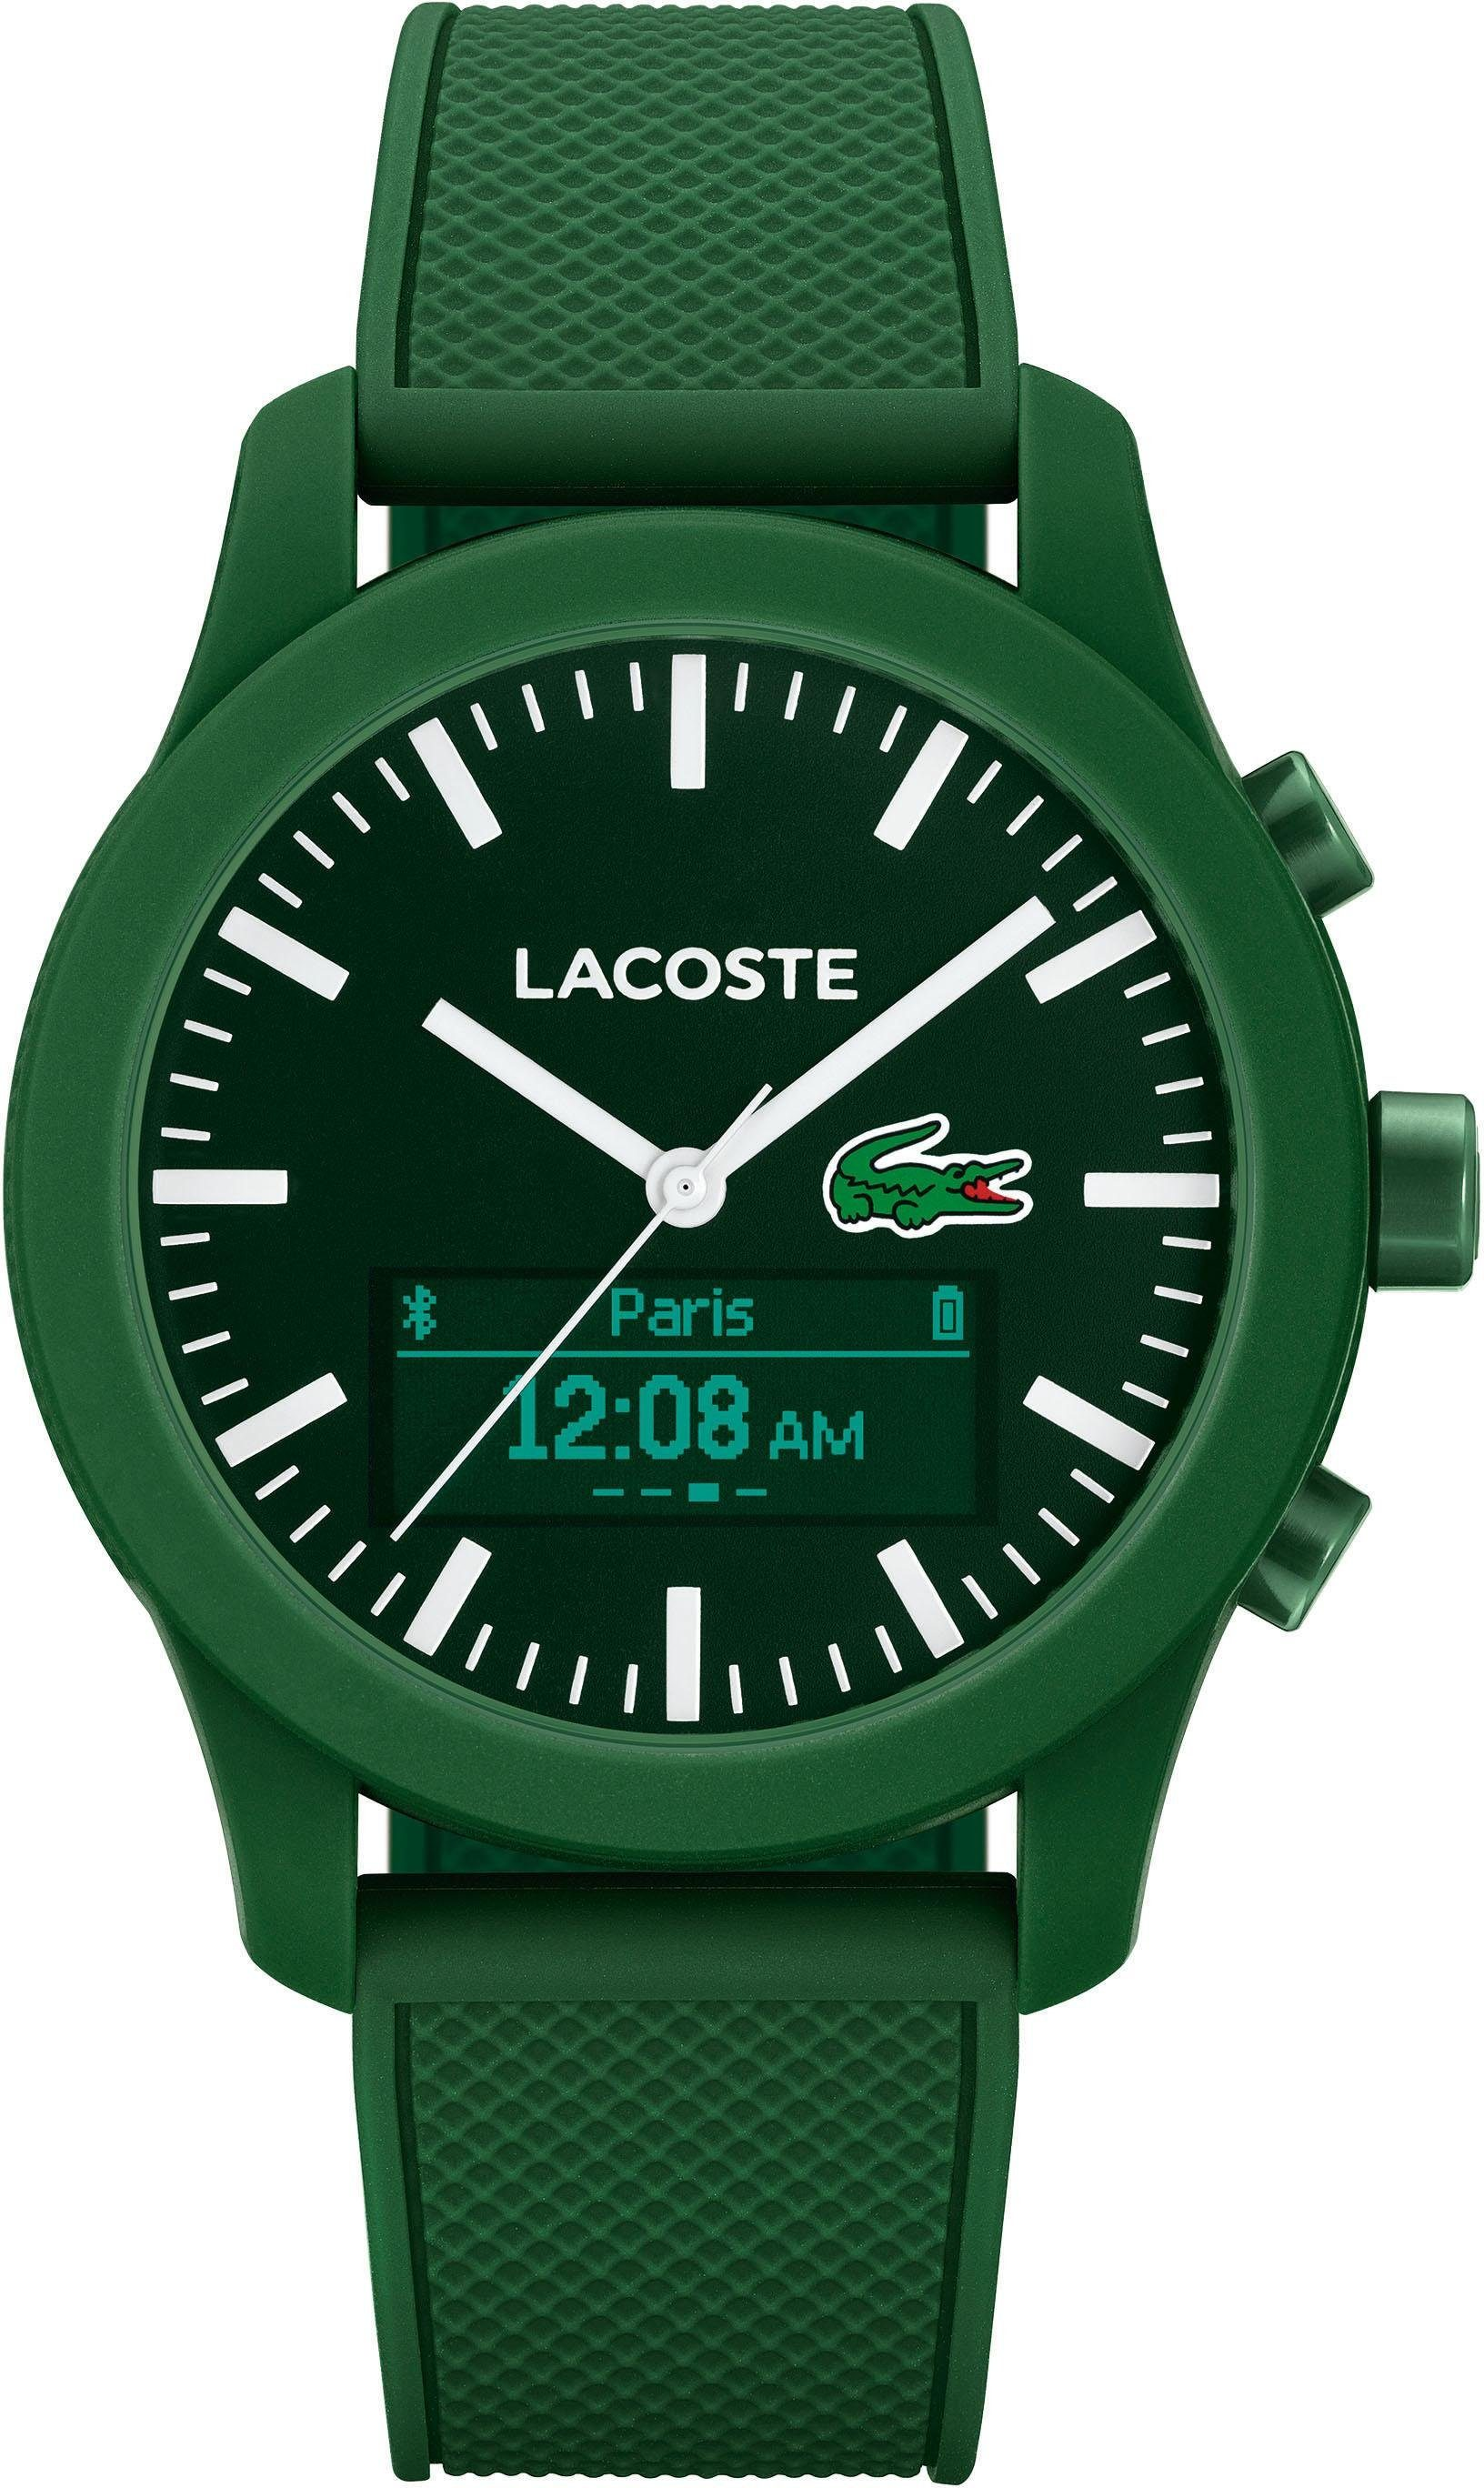 Lacoste Digitaluhr »LACOSTE.12.12 CONTACT, 2010883«